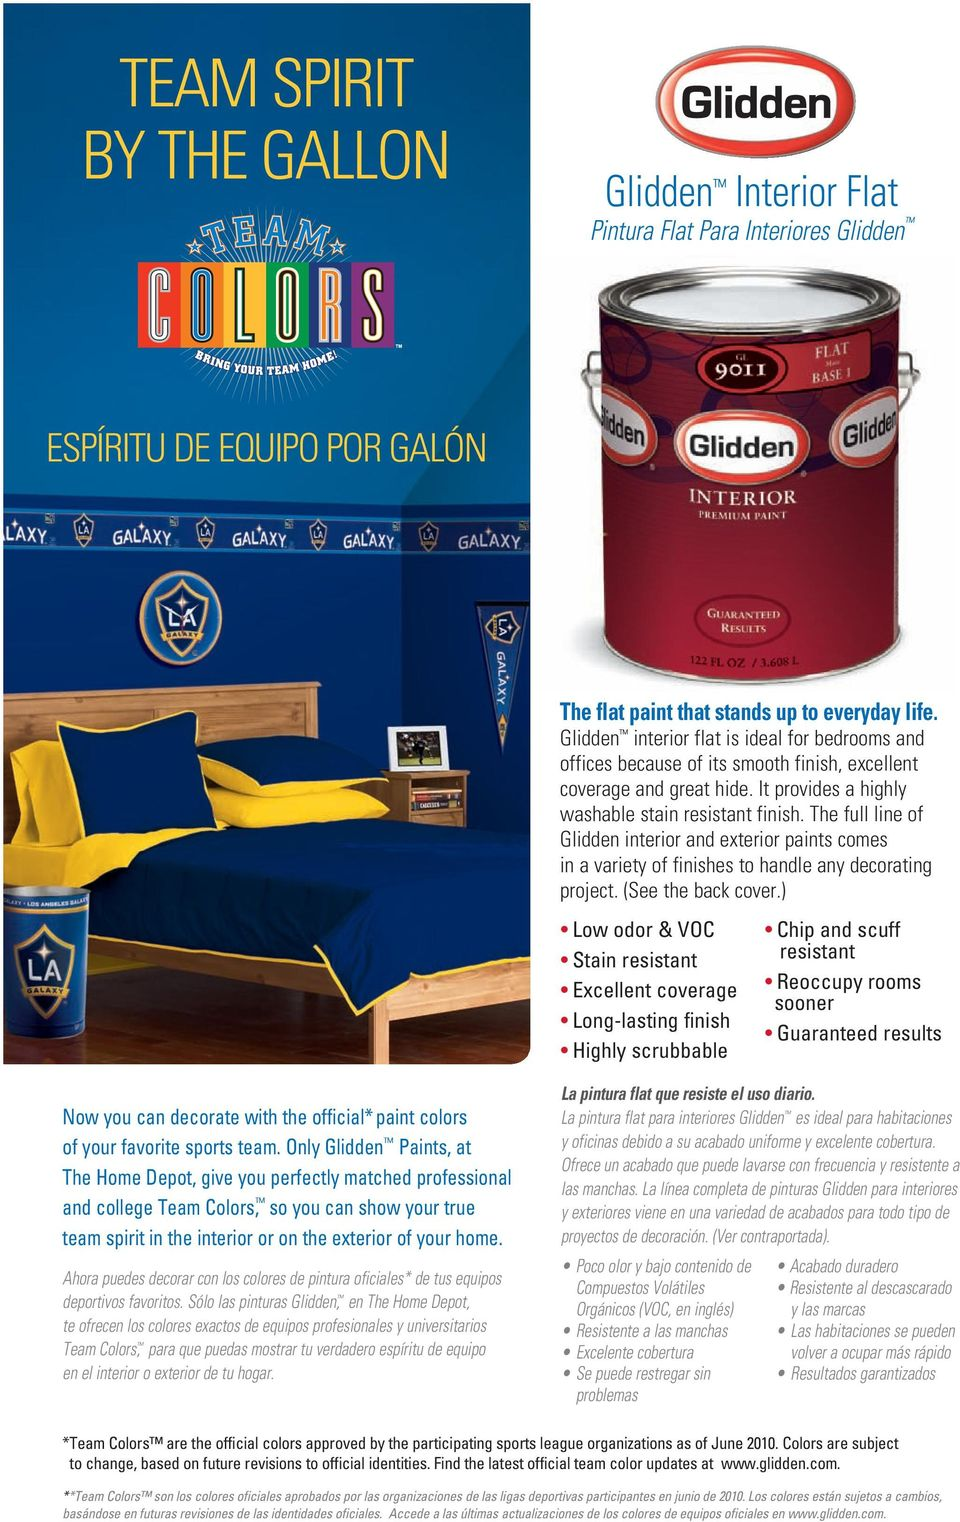 The full line of Glidden interior and exterior paints comes in a variety of finishes to handle any decorating project. (See the back cover.